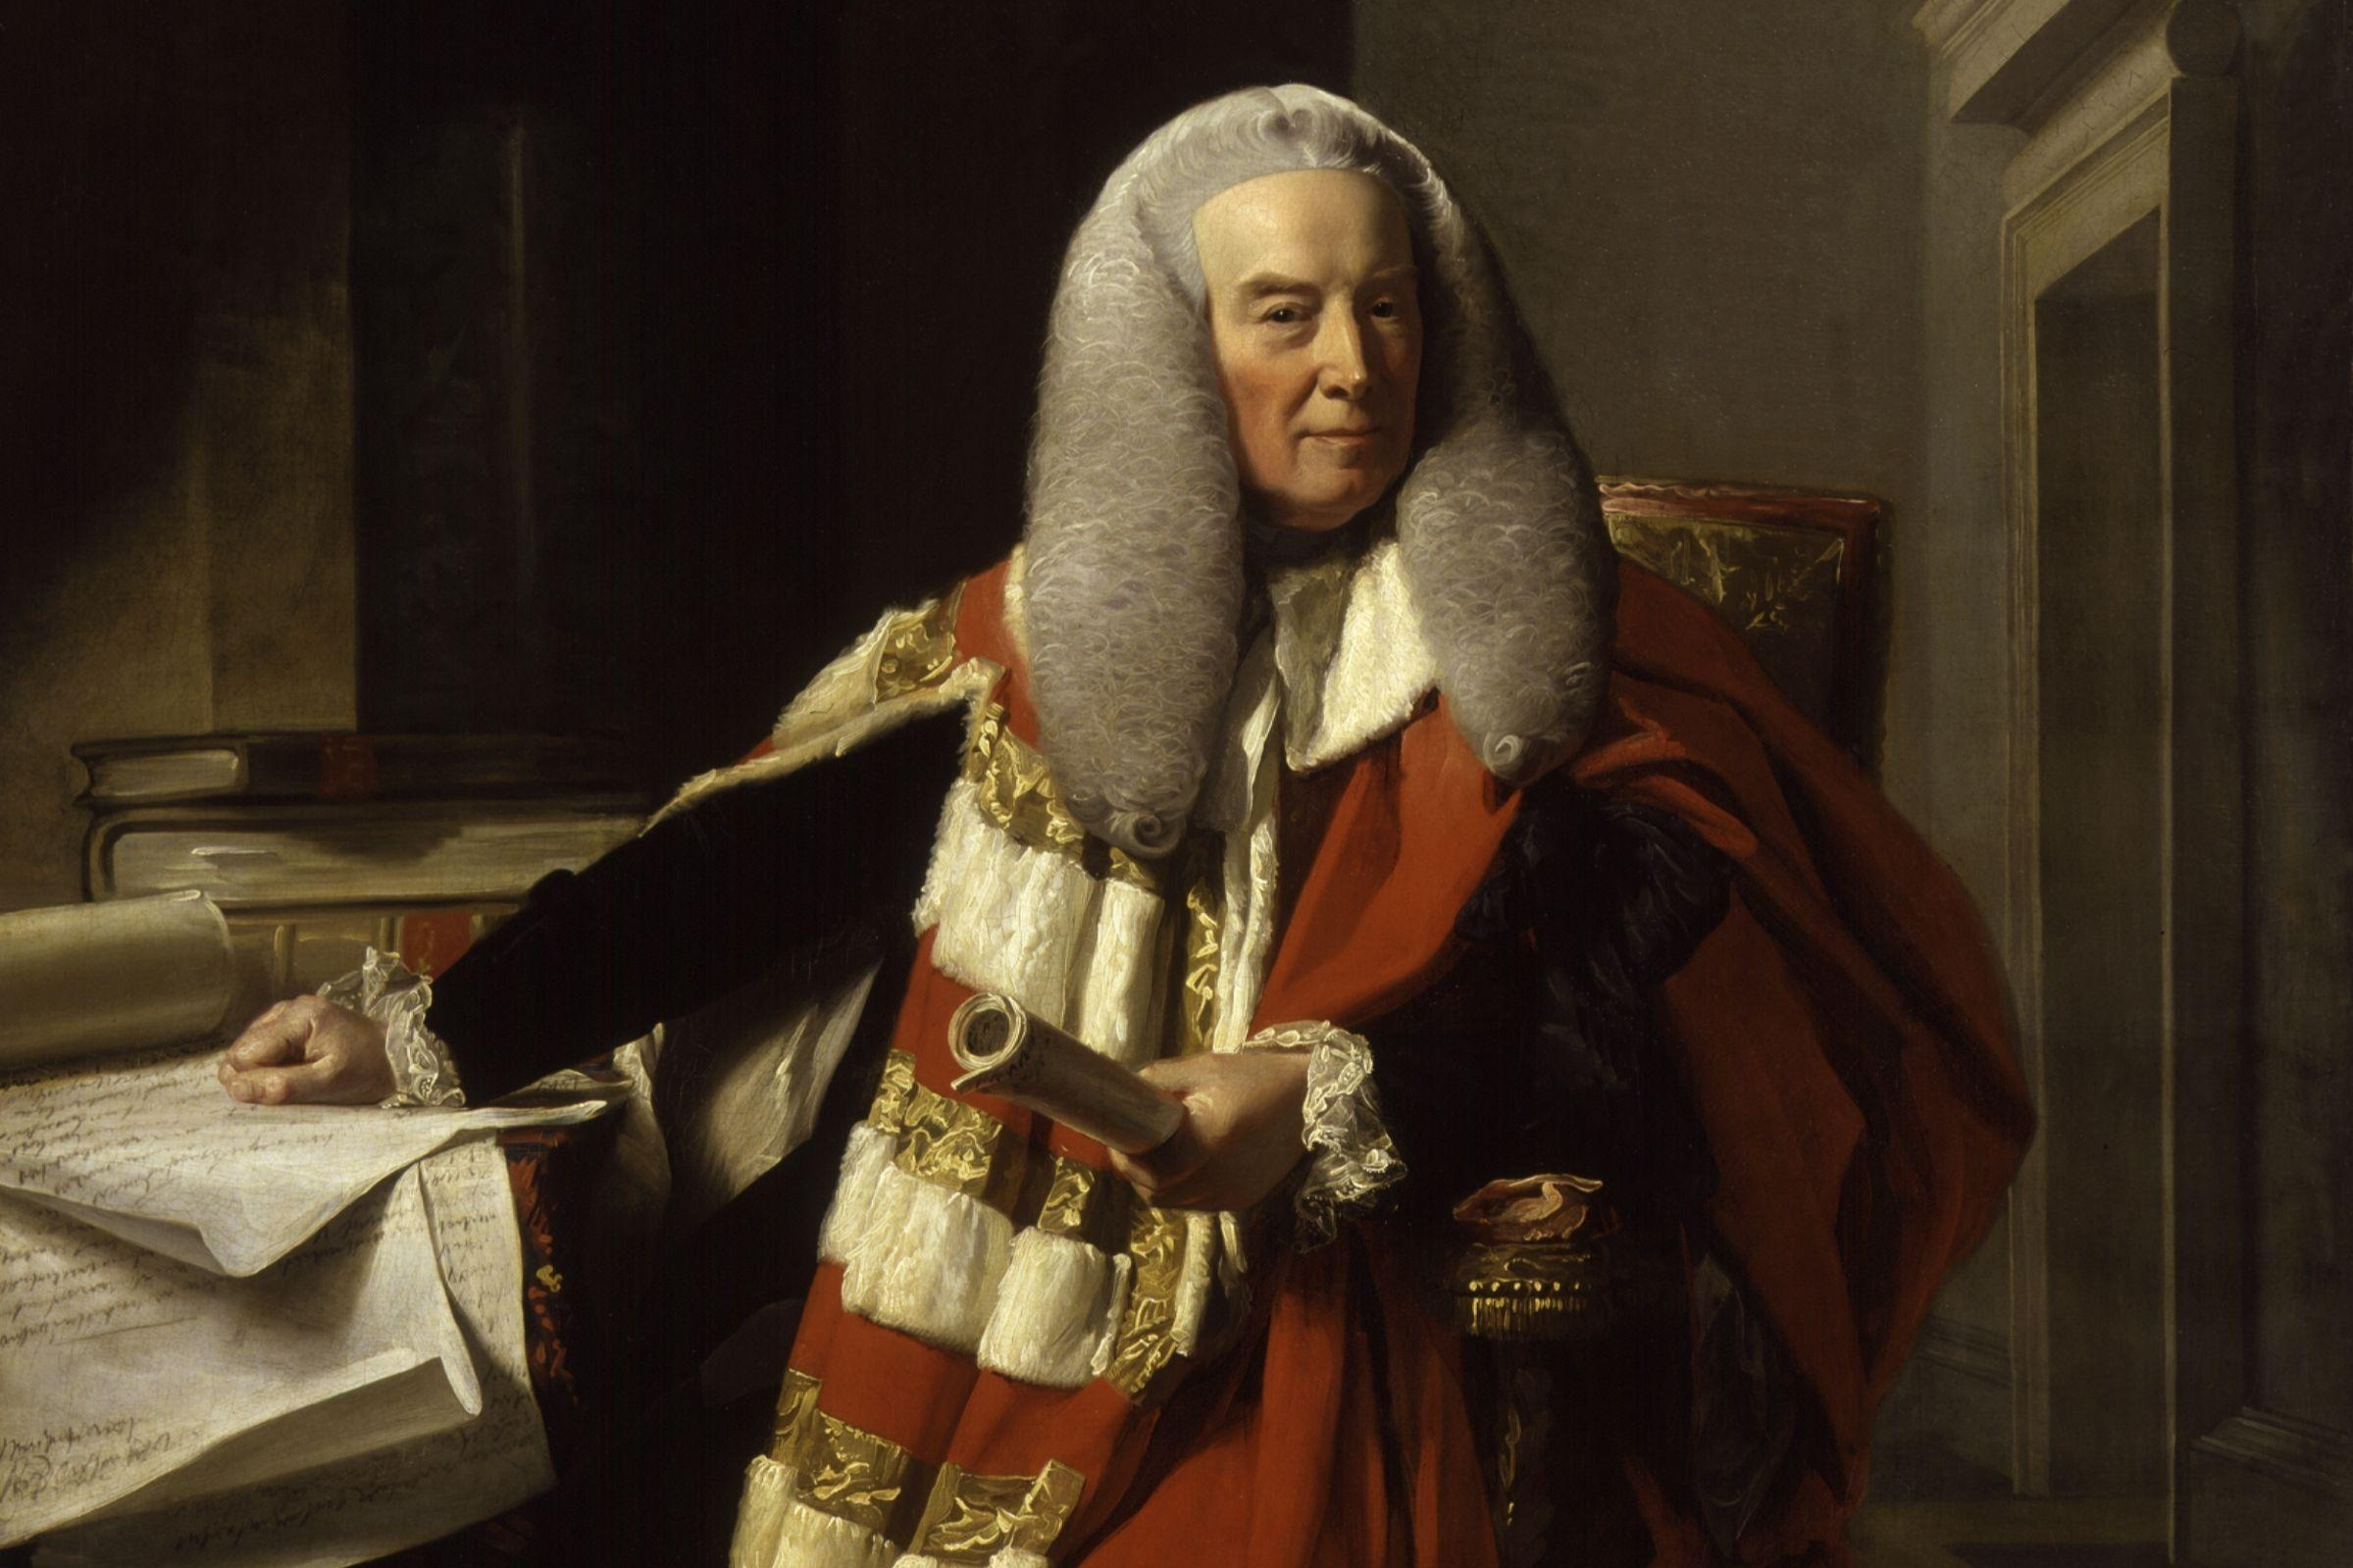 Portrait of Lord Mansfield wearing legal robes and long grey wig, with legal papers